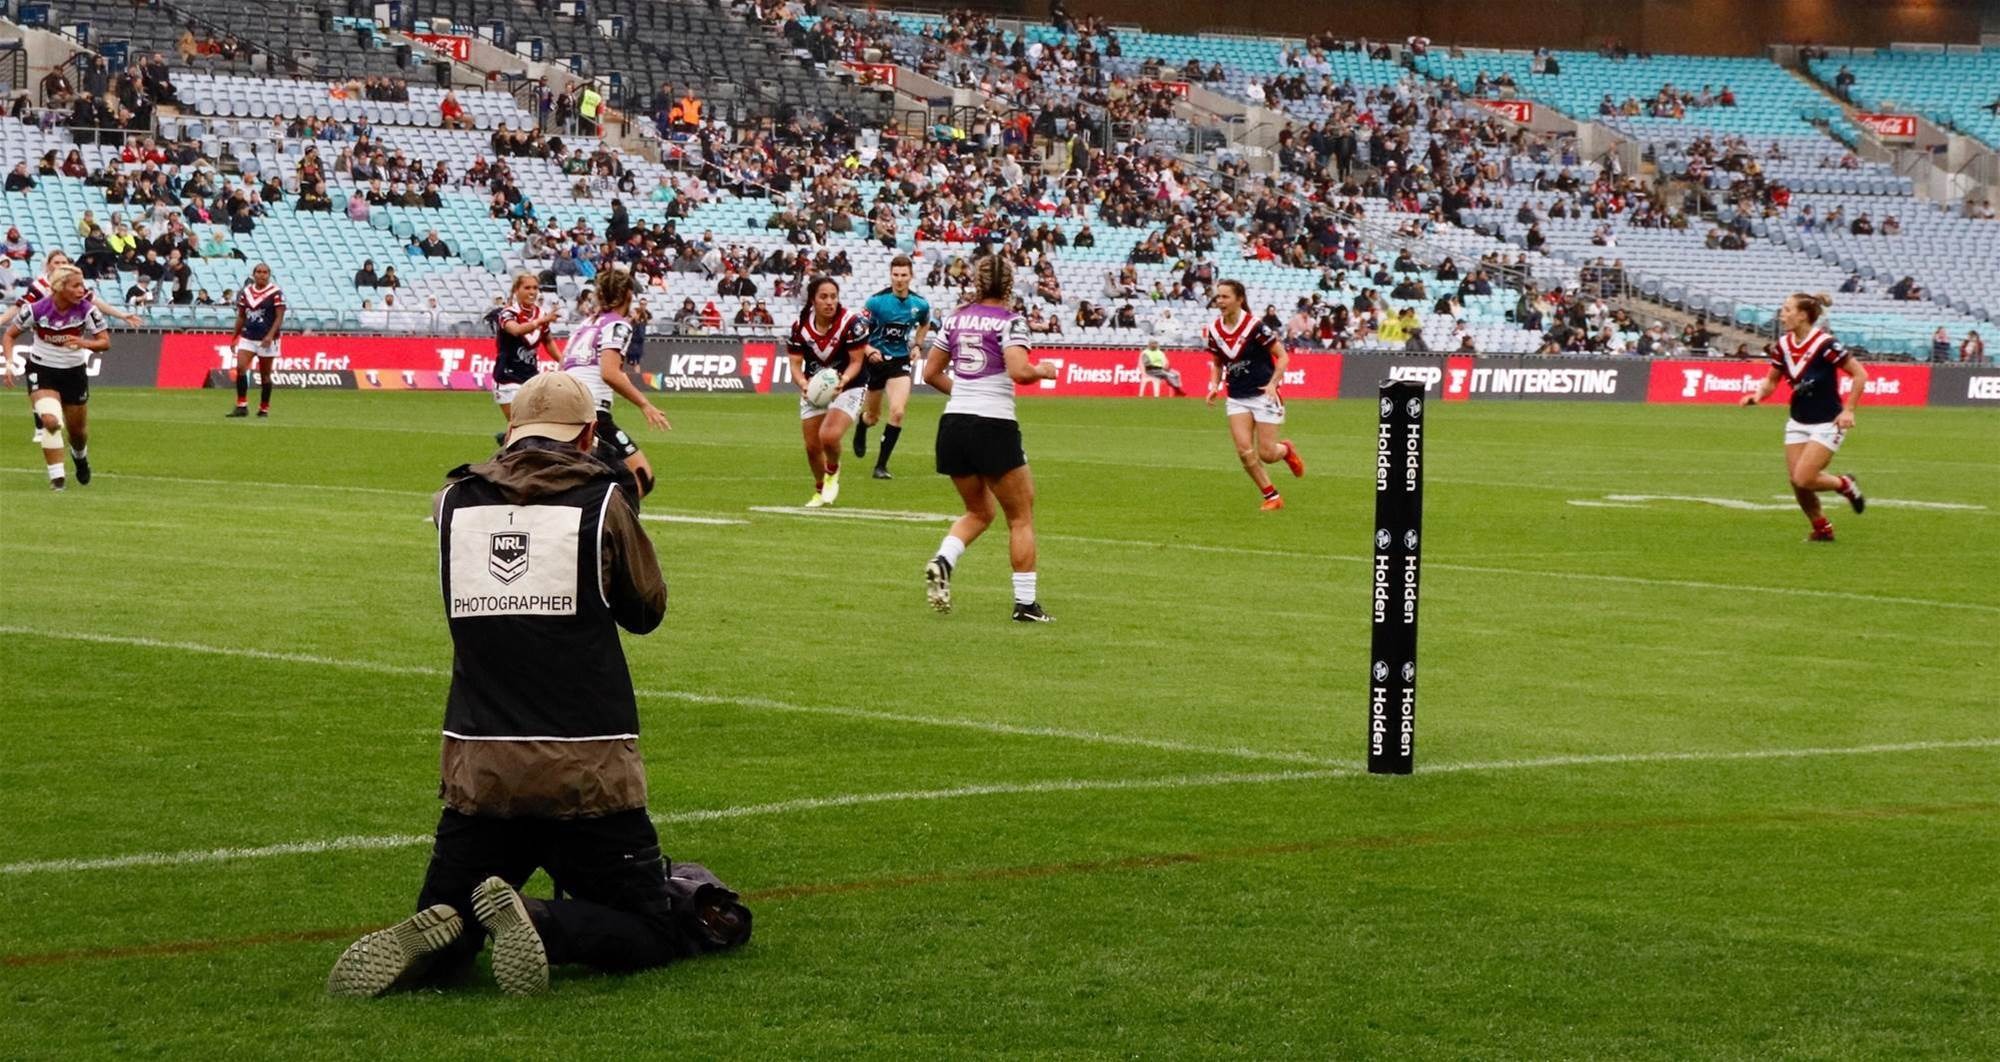 From the sidelines - Sydney Roosters v New Zealand Warriors inaugural NRLW